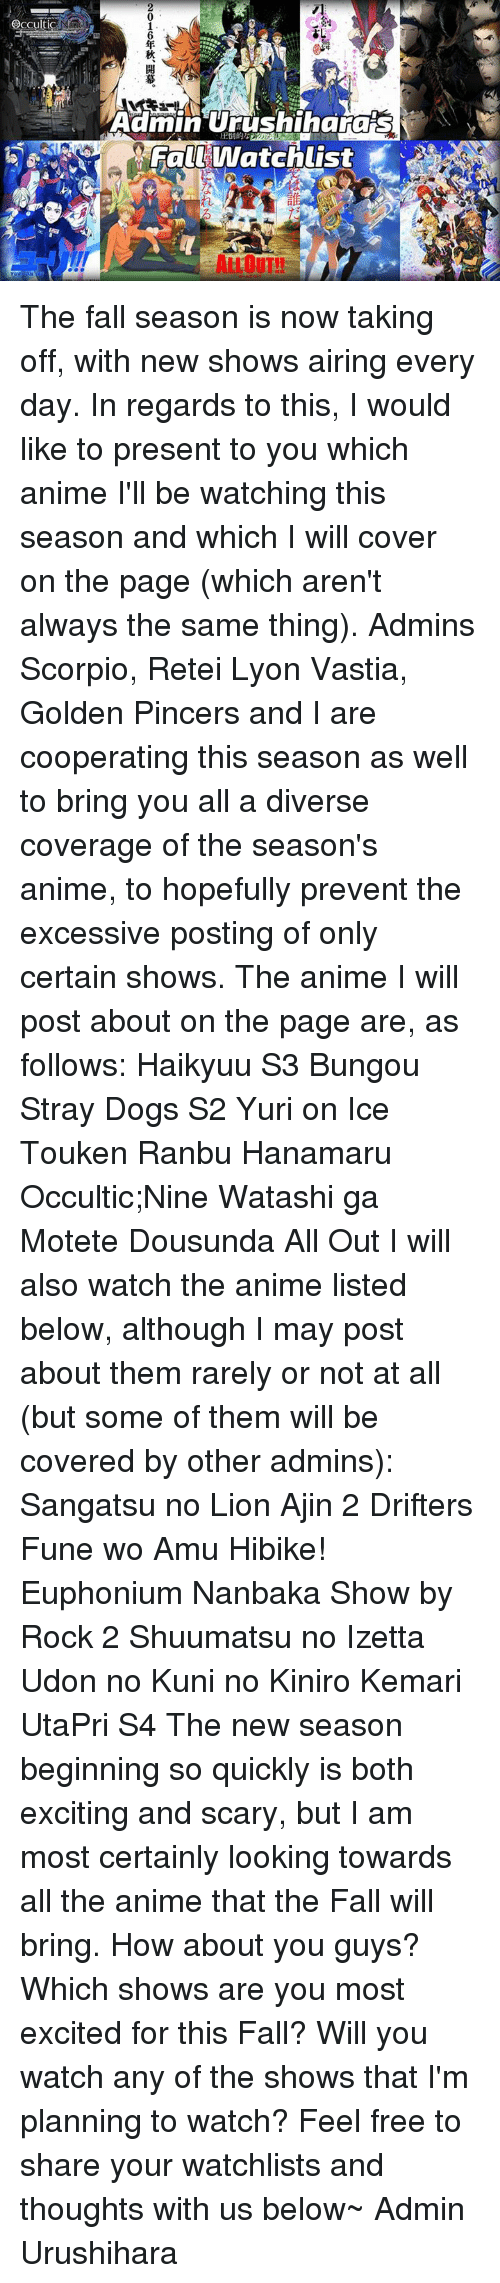 fall season: Occult is  AA  乱  AaminUiS  rushihara  FalE Watchlist  8  れ  2016年秋、開幕。 The fall season is now taking off, with new shows airing every day.  In regards to this, I would like to present to you which anime I'll be watching this season and which I will cover on the page (which aren't always the same thing). Admins Scorpio, Retei Lyon Vastia, Golden Pincers and I are cooperating this season as well to bring you all a diverse coverage of the season's anime, to hopefully prevent the excessive posting of only certain shows.  The anime I will post about on the page are, as follows:  Haikyuu S3 Bungou Stray Dogs S2 Yuri on Ice Touken Ranbu Hanamaru Occultic;Nine Watashi ga Motete Dousunda All Out  I will also watch the anime listed below, although I may post about them rarely or not at all (but some of them will be covered by other admins):  Sangatsu no Lion Ajin 2 Drifters Fune wo Amu Hibike! Euphonium Nanbaka Show by Rock 2 Shuumatsu no Izetta Udon no Kuni no Kiniro Kemari UtaPri S4  The new season beginning so quickly is both exciting and scary, but I am most certainly looking towards all the anime that the Fall will bring.  How about you guys? Which shows are you most excited for this Fall? Will you watch any of the shows that I'm planning to watch? Feel free to share your watchlists and thoughts with us below~  Admin Urushihara